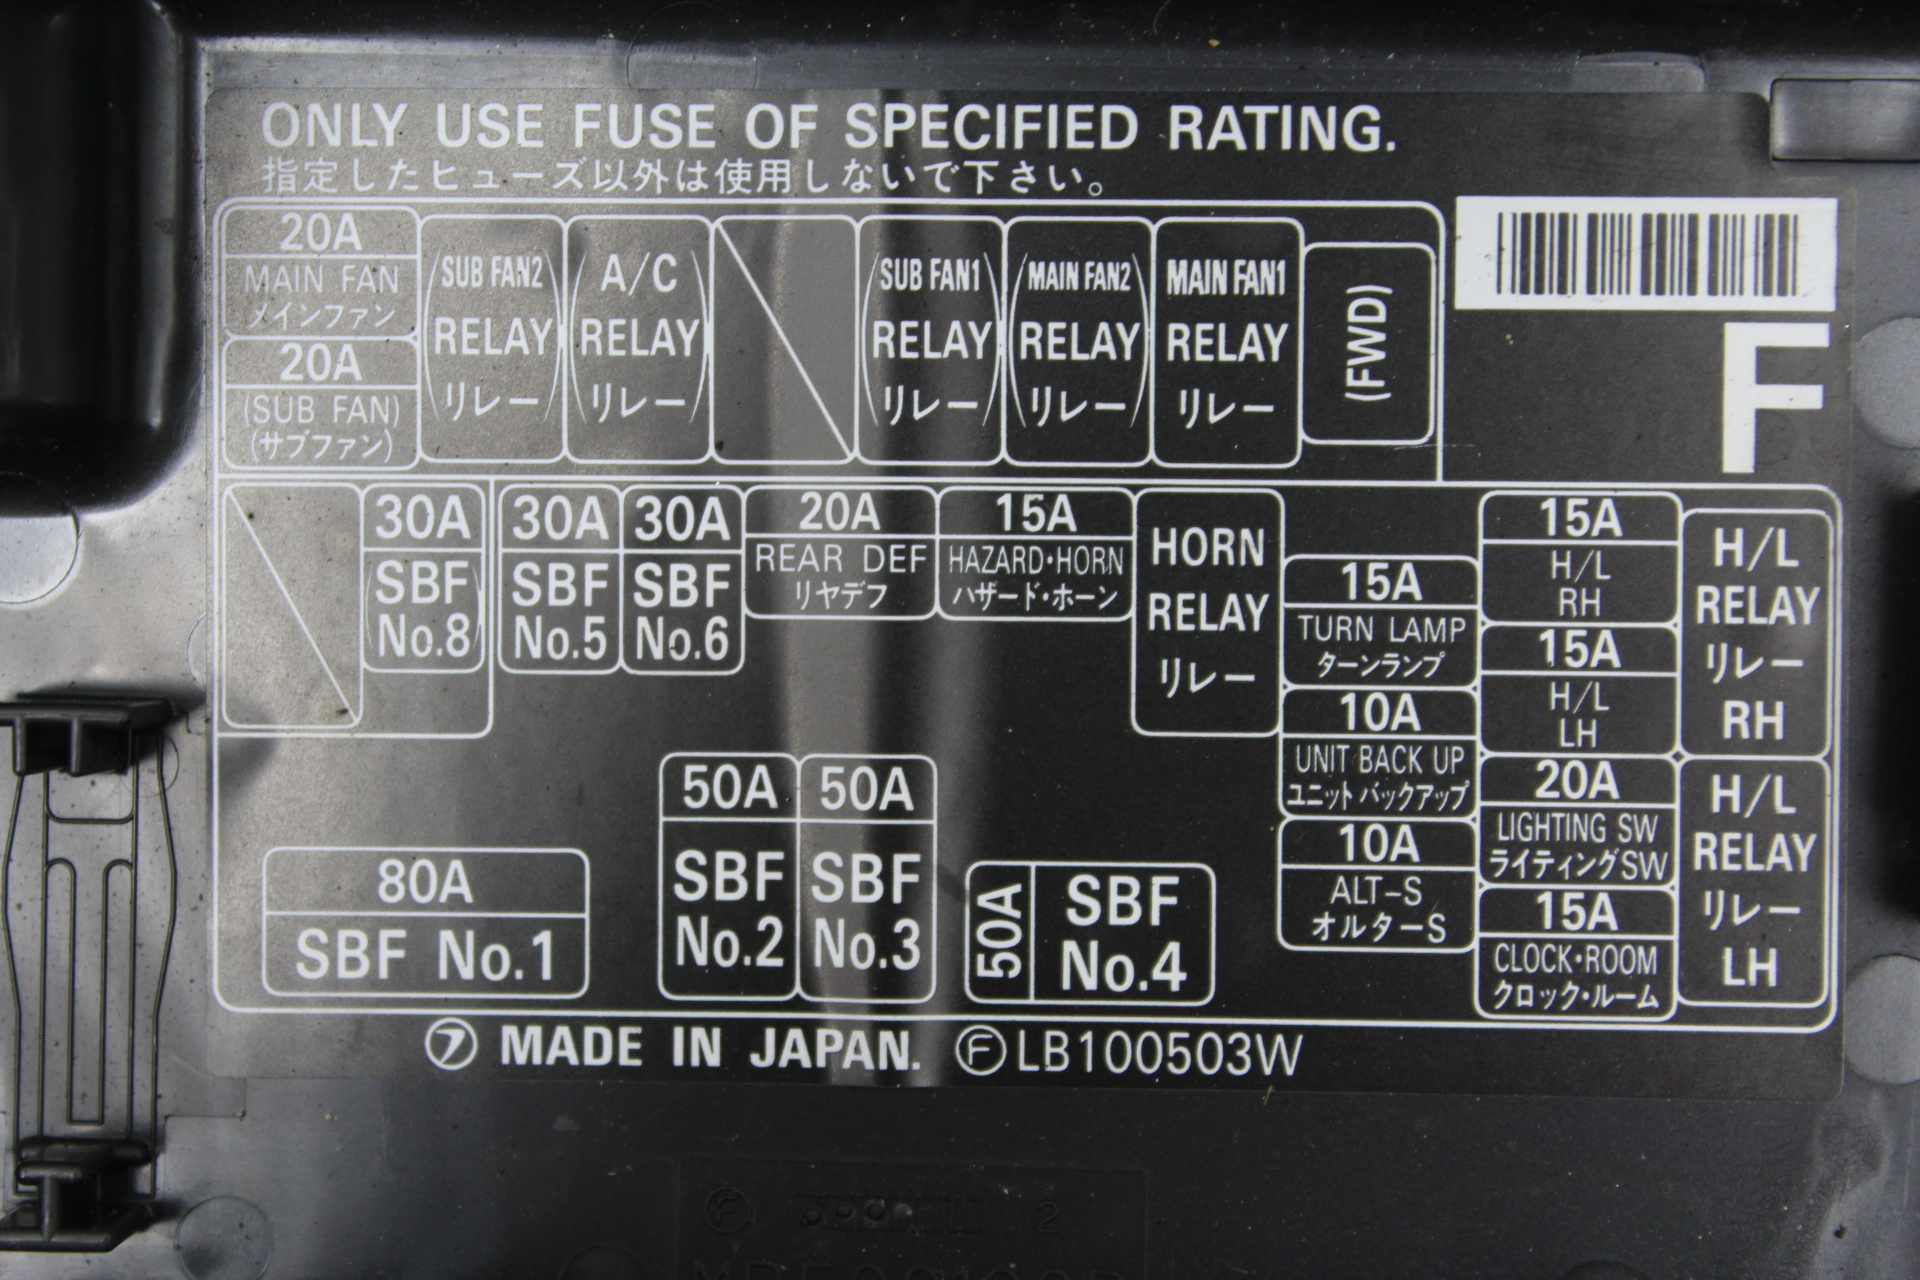 hight resolution of 2007 impreza fuse box diagram most exciting wiring diagram  2007 subaru legacy fuse